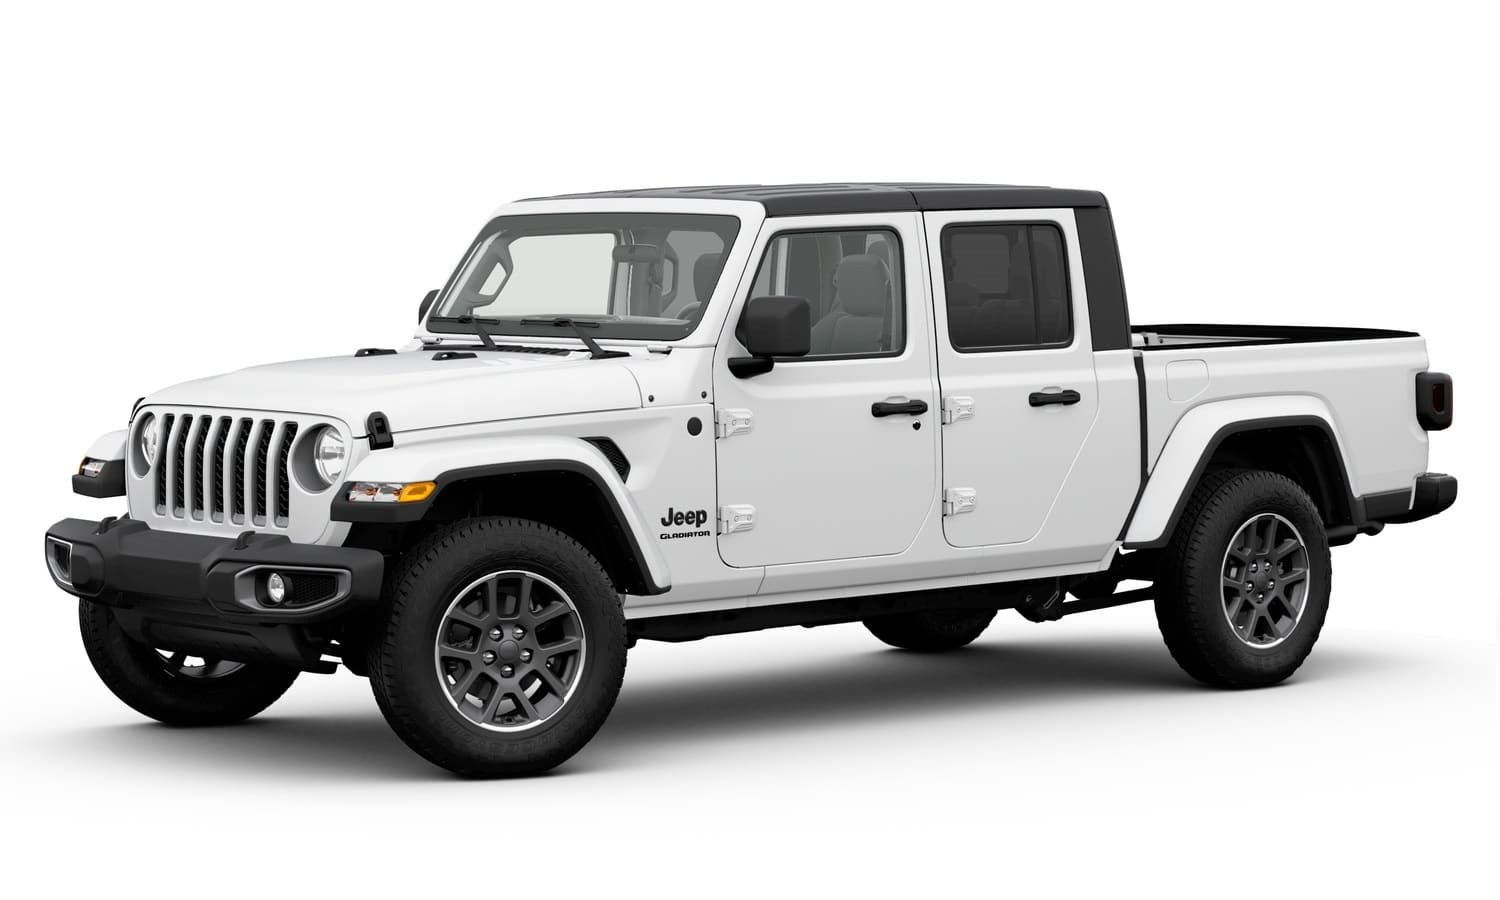 Jeep Gladiator Altitude 2020 front